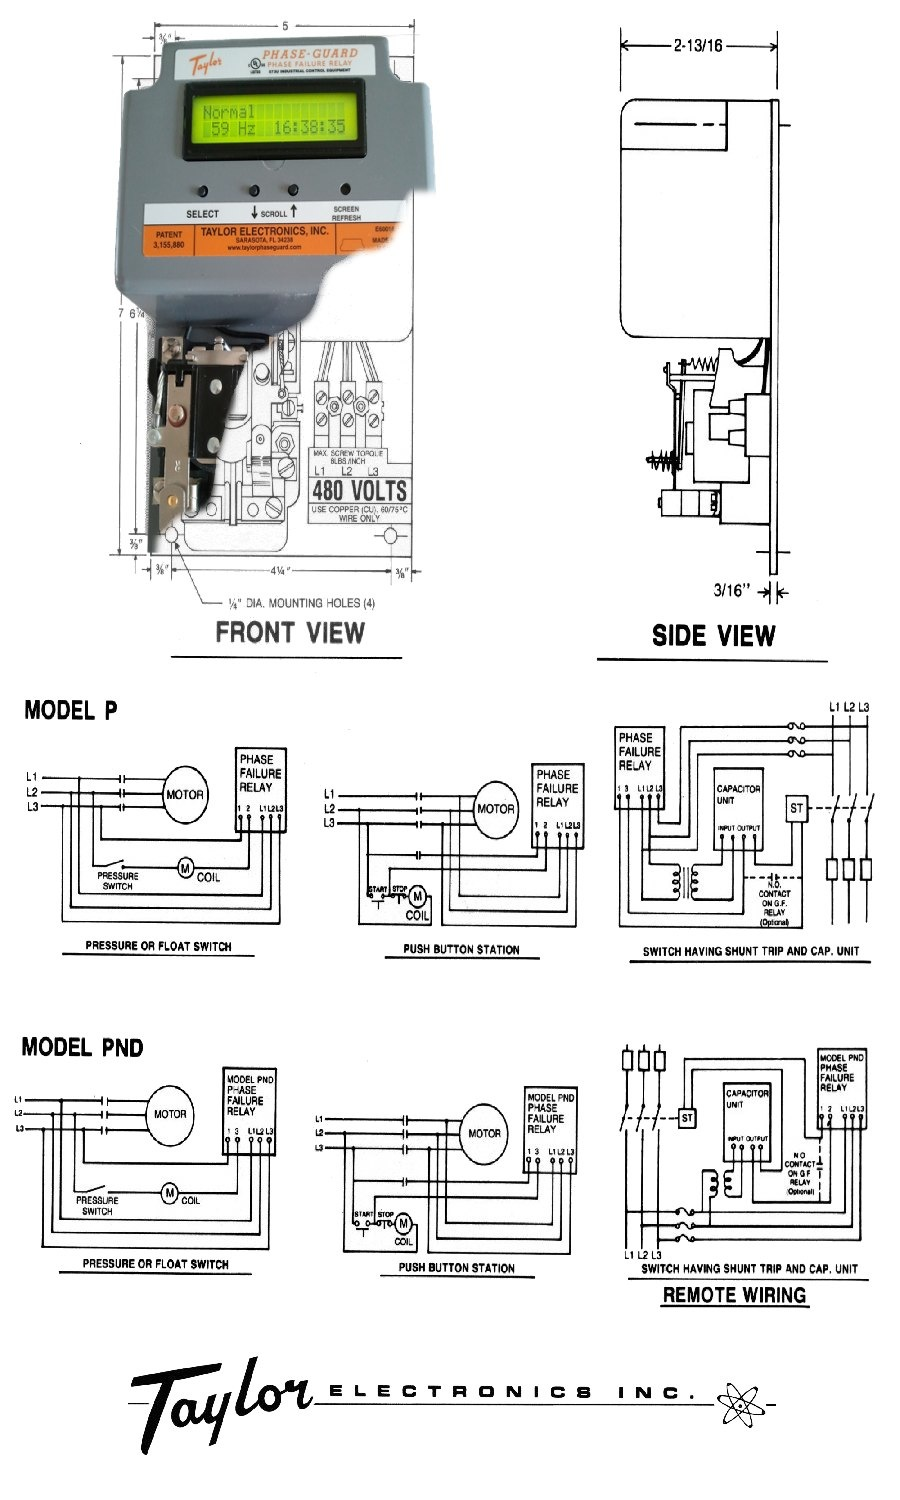 medium resolution of taylor forklift wiring diagrams auto electrical wiring diagram tomberlin emerge wiring diagram taylor forklift wiring